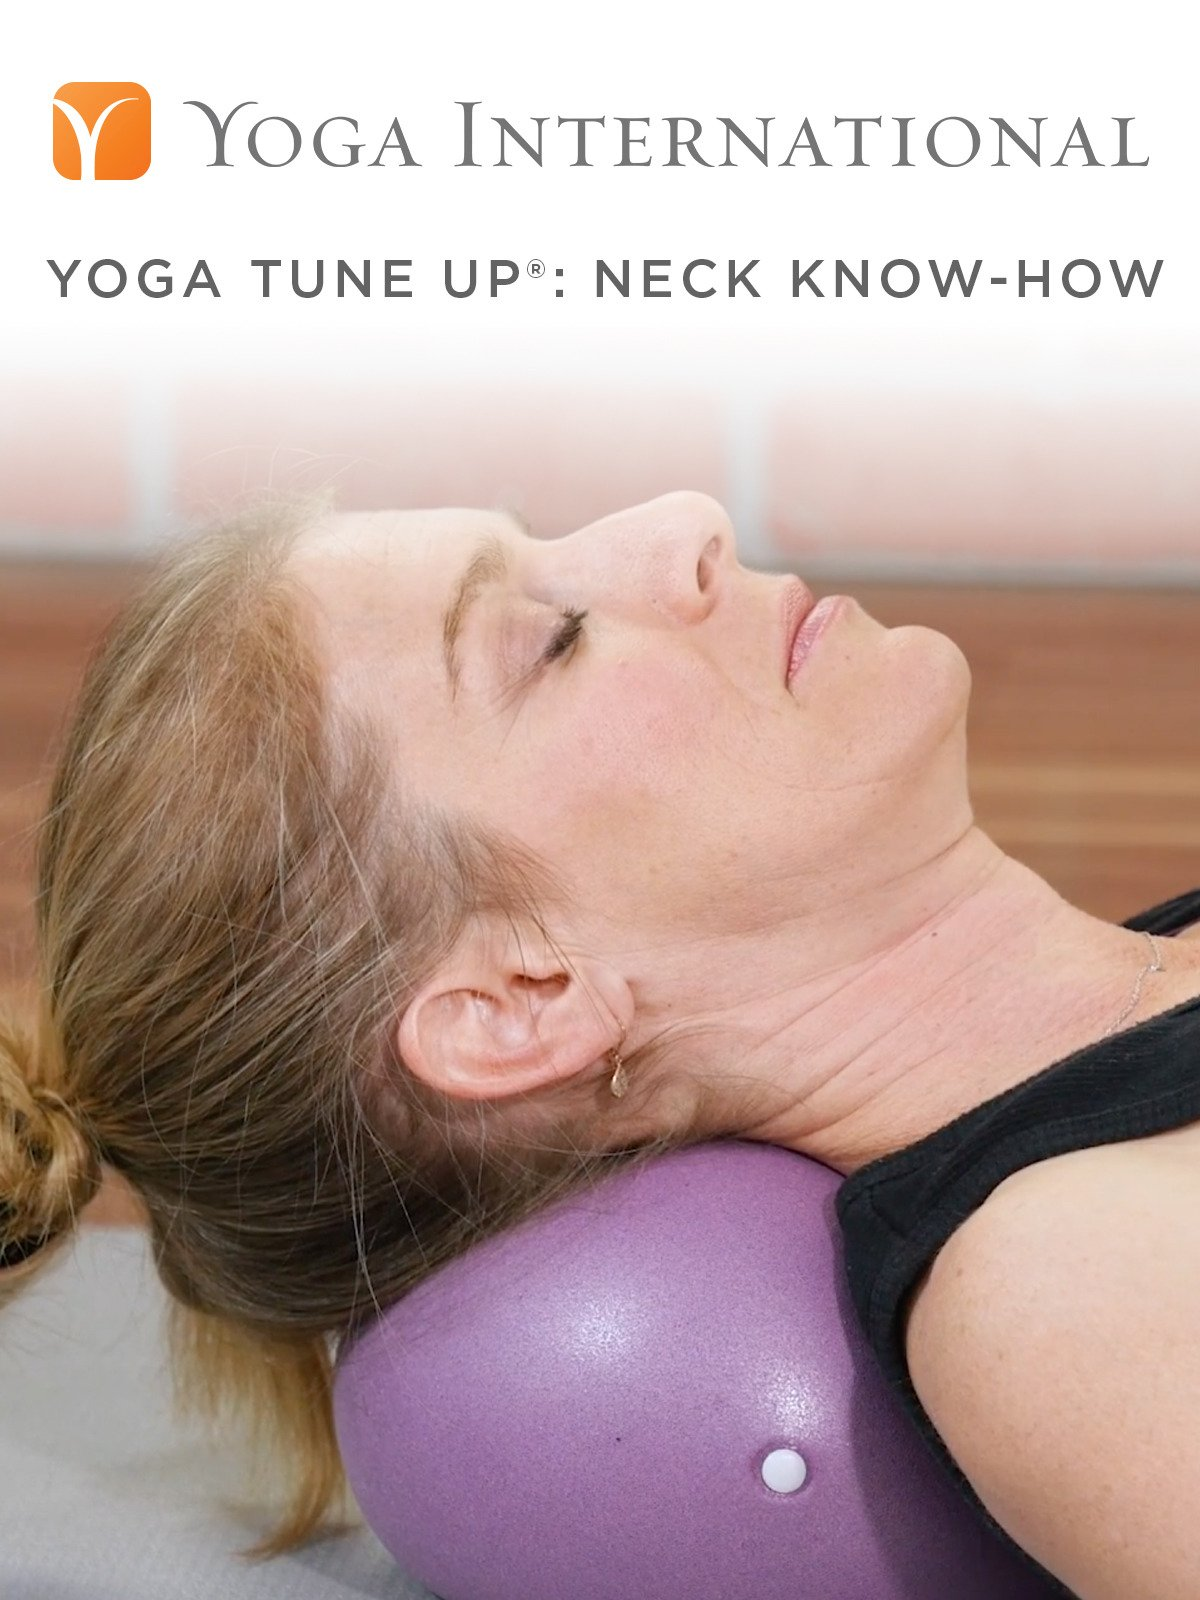 Amazon.com: Watch Yoga Tune Up®: Neck Know-How | Prime Video